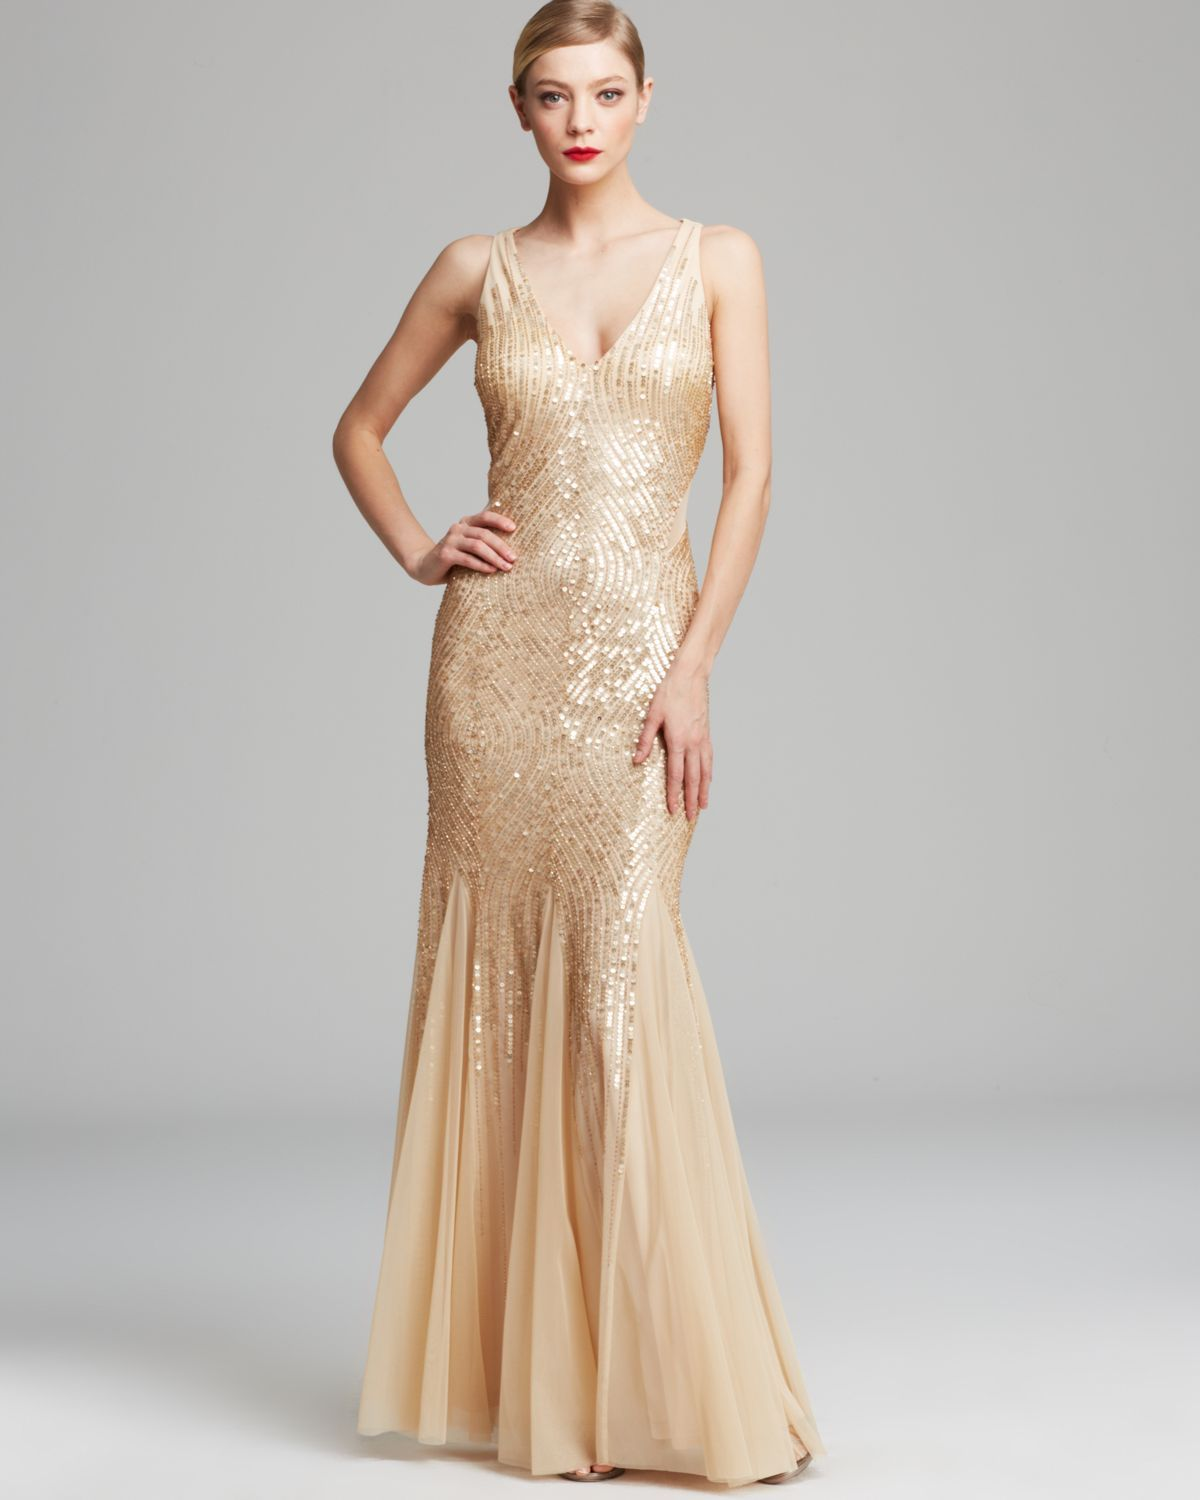 Papell cap sleeve beaded sequined gown dresses women macy s - Adrianna Papell Gown Sleeveless V Neck Beaded With Illusion Cutouts In Beige Champagne